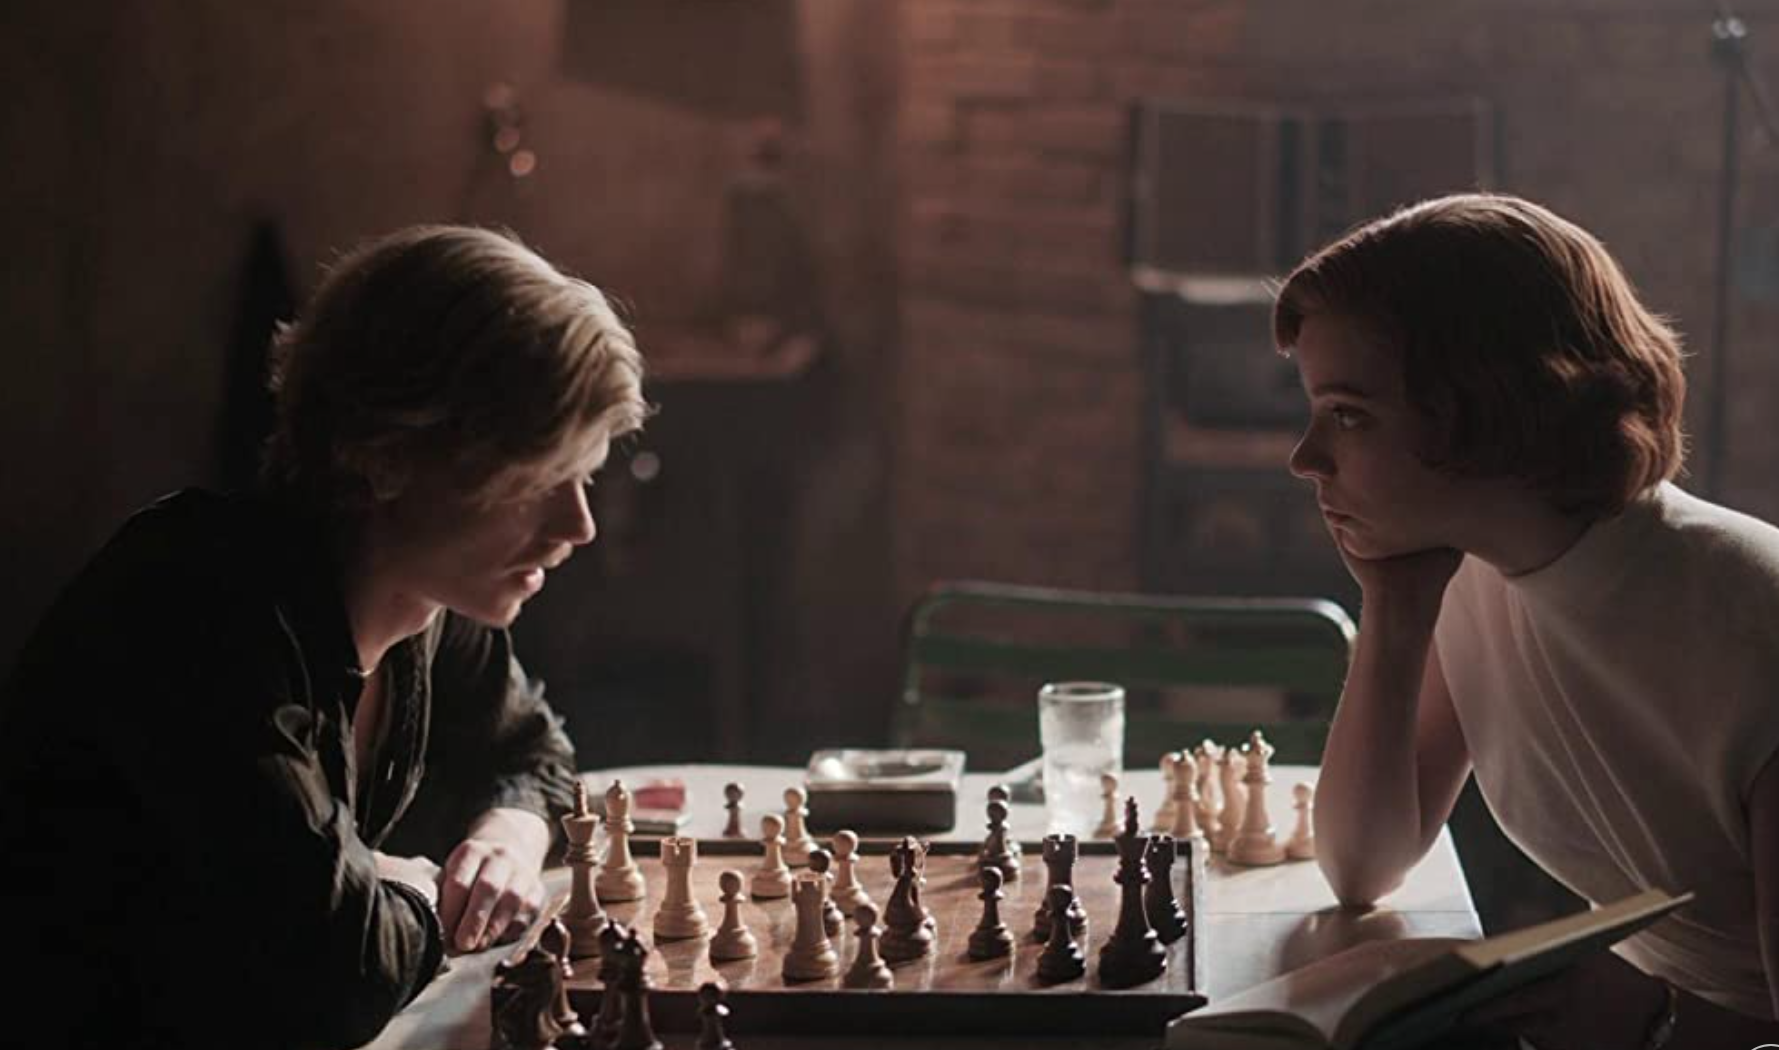 """Anya Taylor-Joy as Beth Harmon and Thomas Brodie-Sangster as Benny Watts in the show """"The Queen's Gambit."""""""